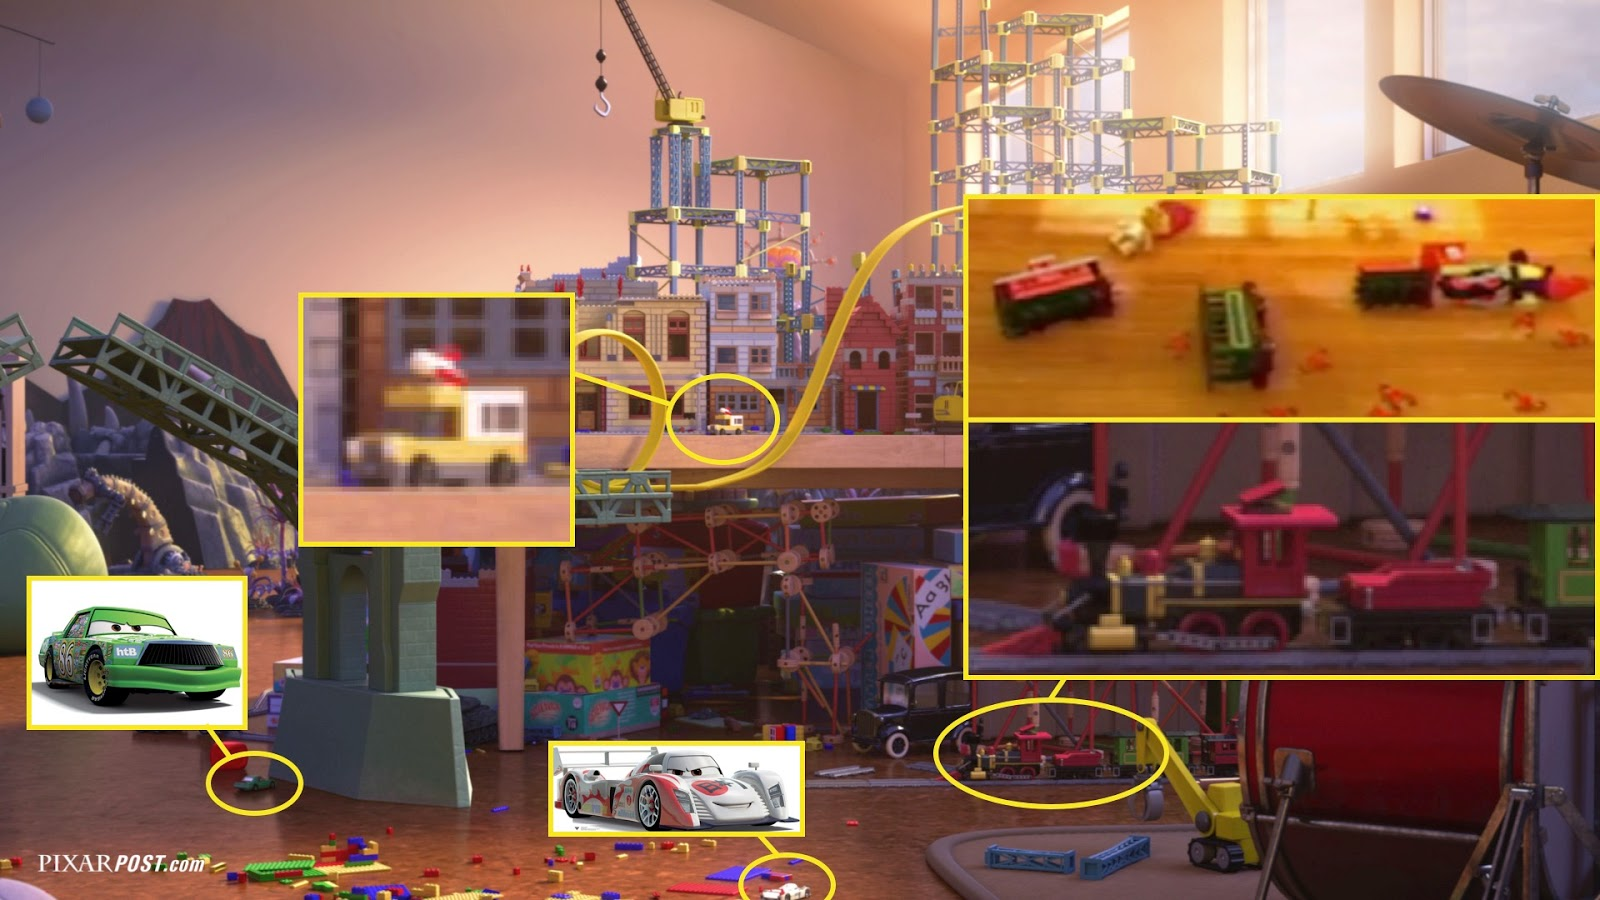 Pixar Cars Wallpaper In Depth Look At The Easter Eggs Hidden In Toy Story That